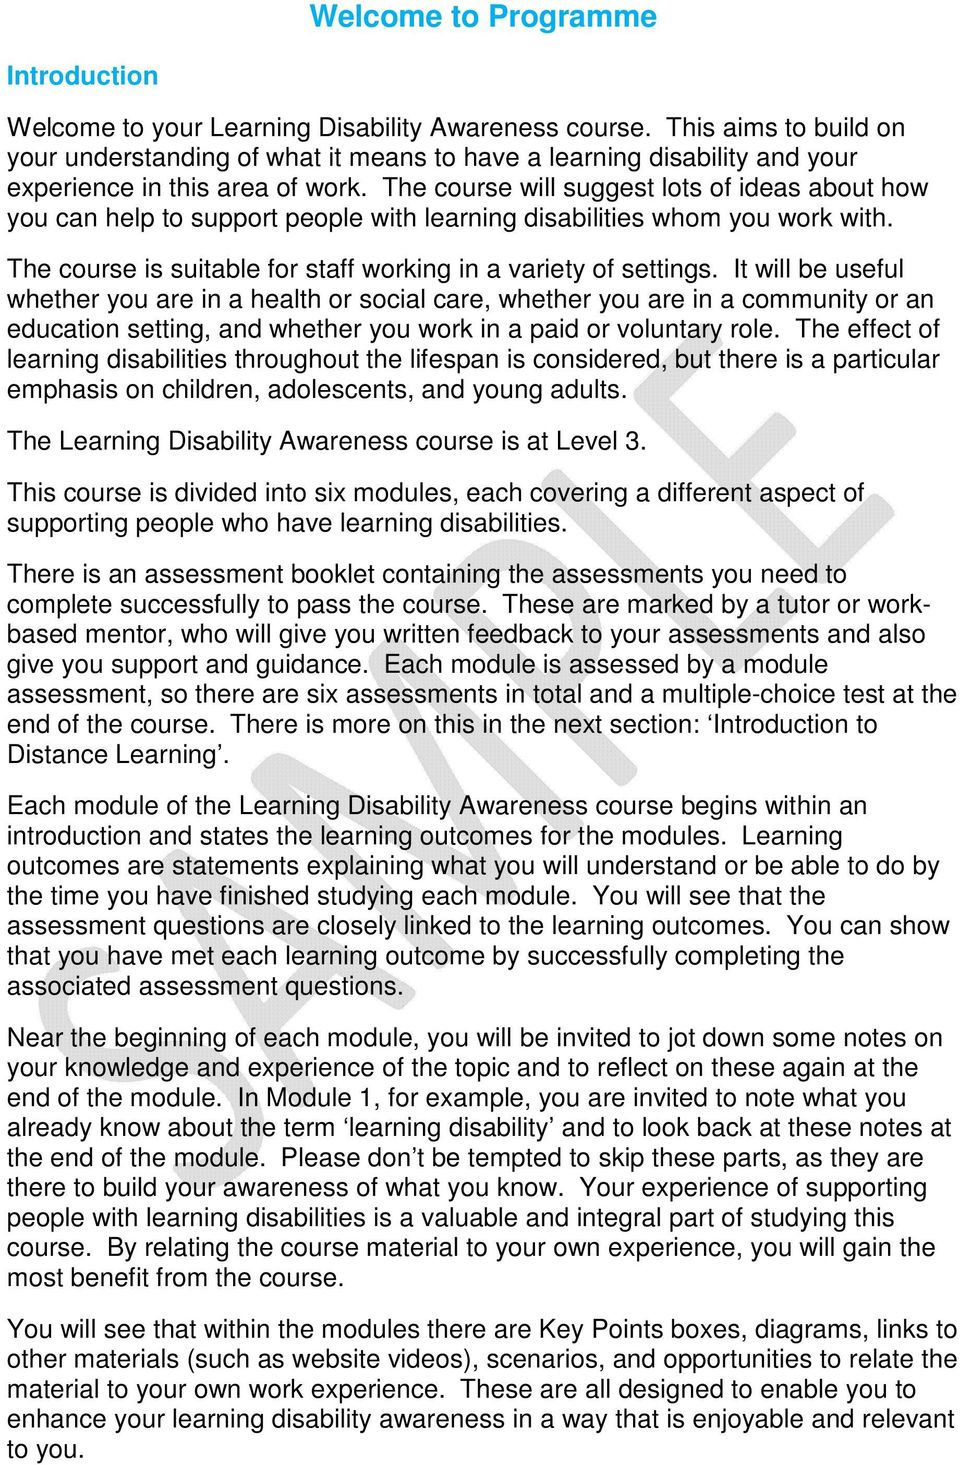 Certificate in Learning Disability Awareness for Health and